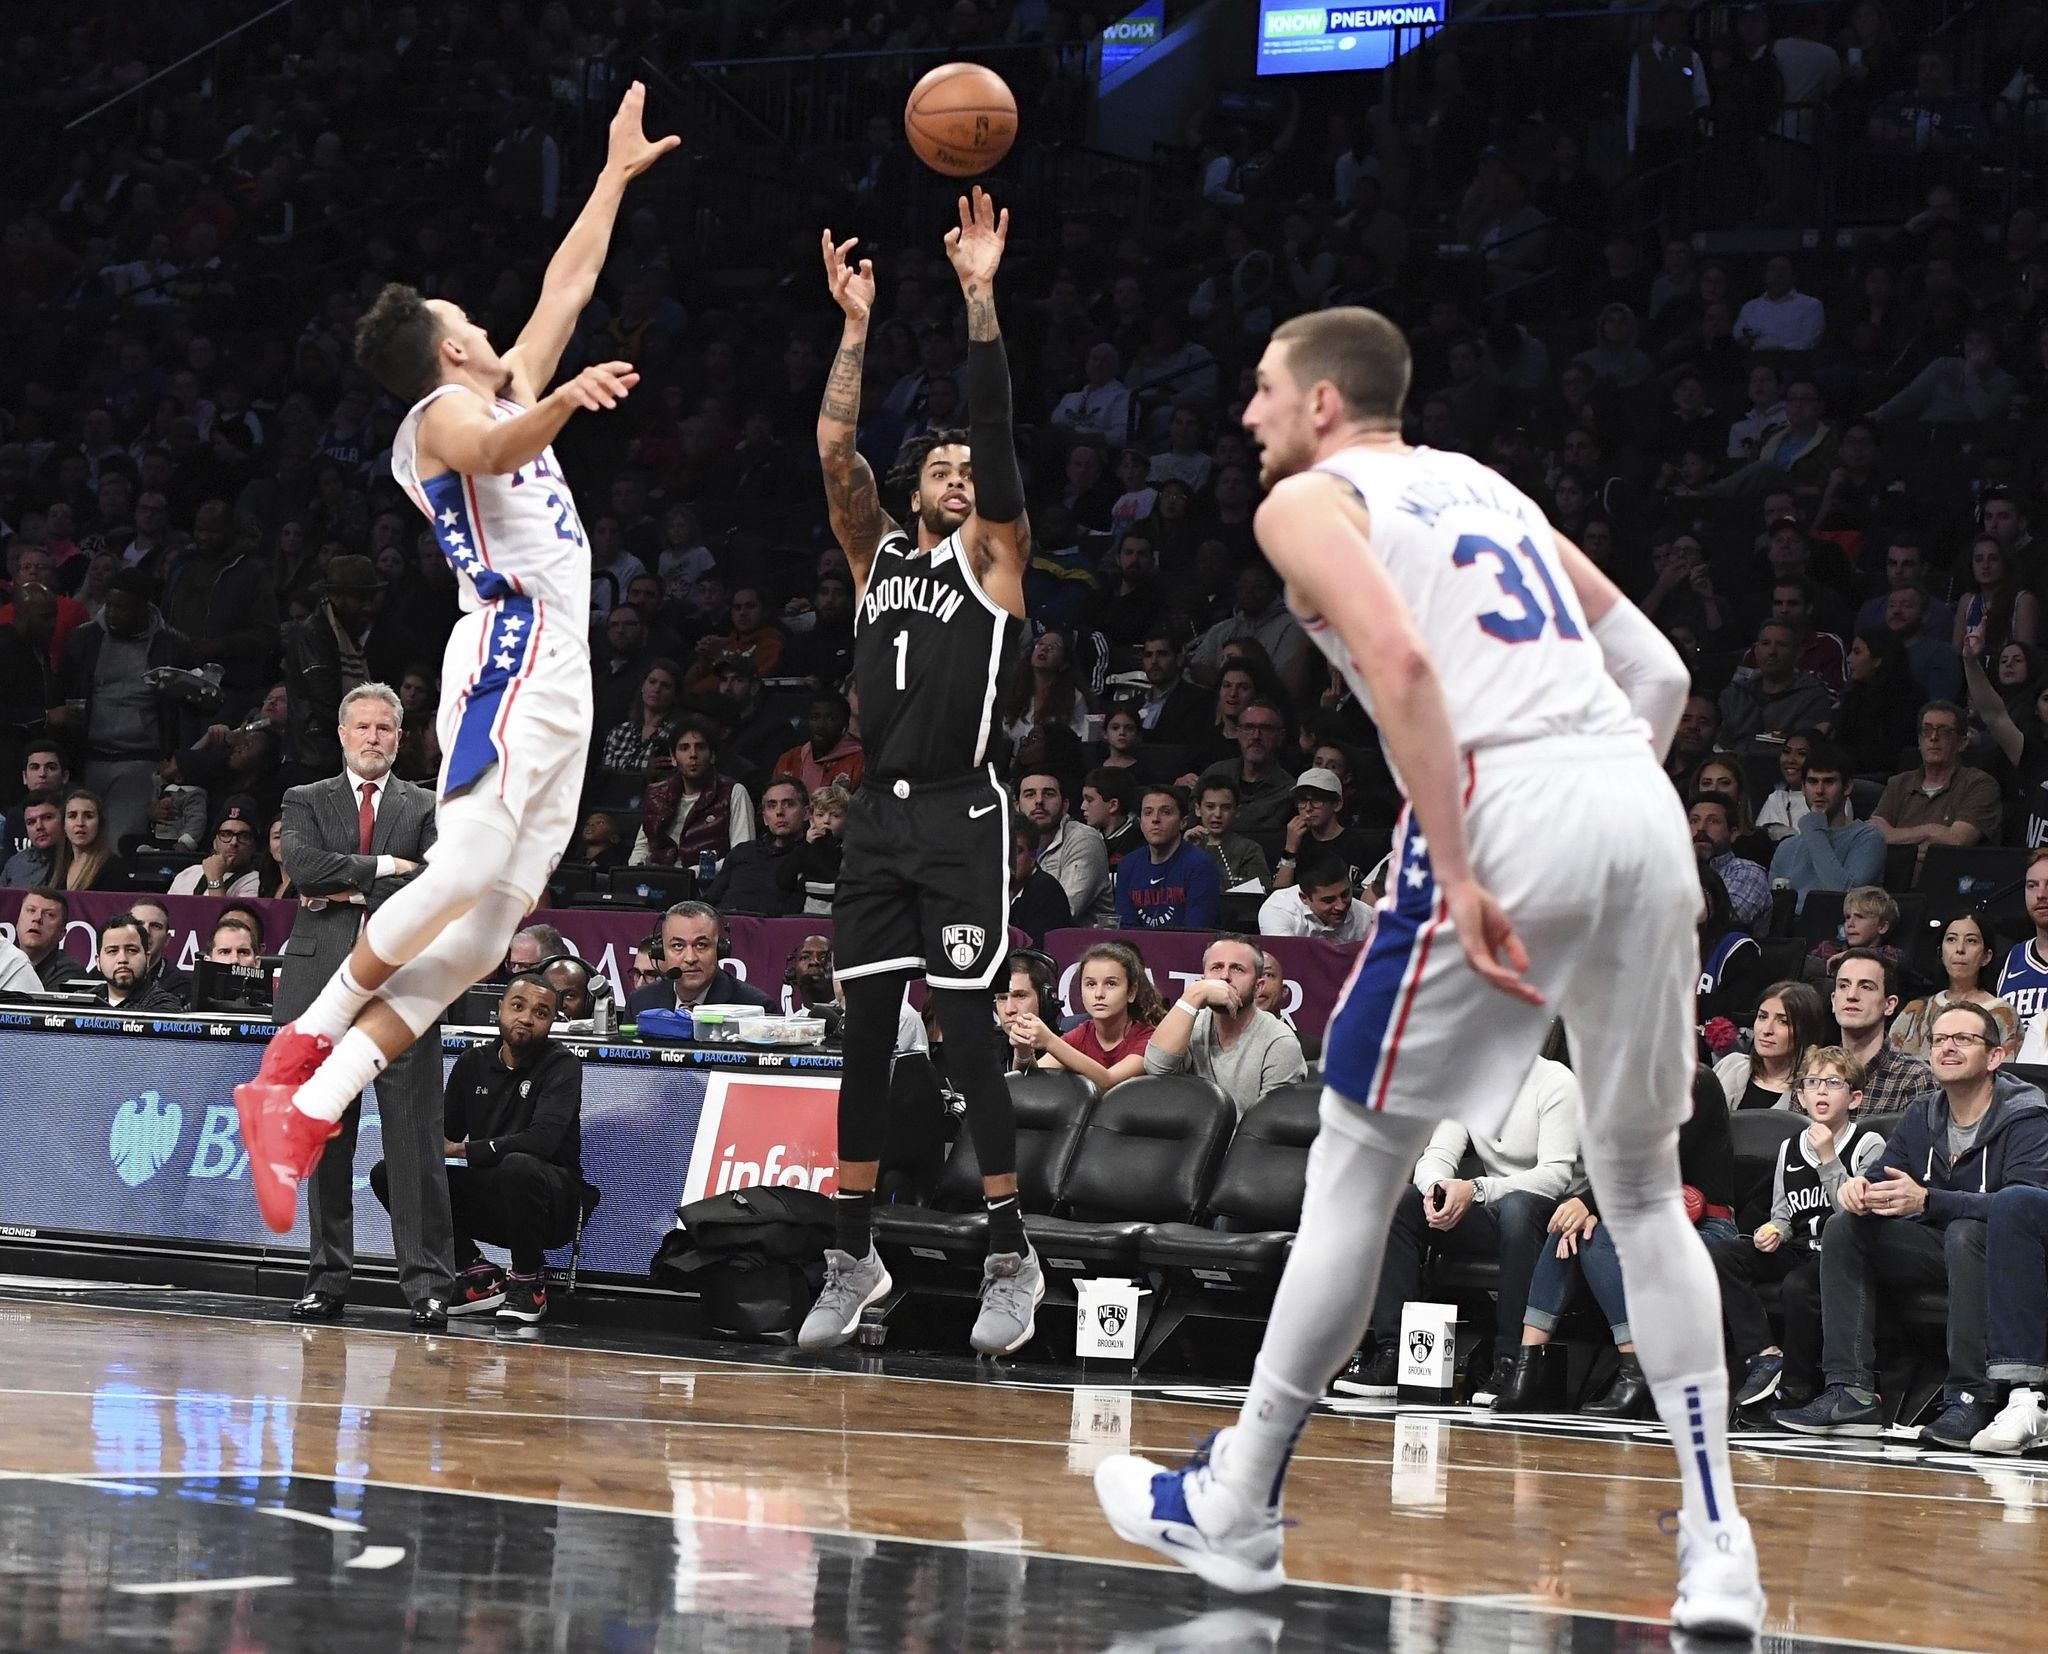 Russell scores 21, Nets defeat sloppy Sixers 122-97